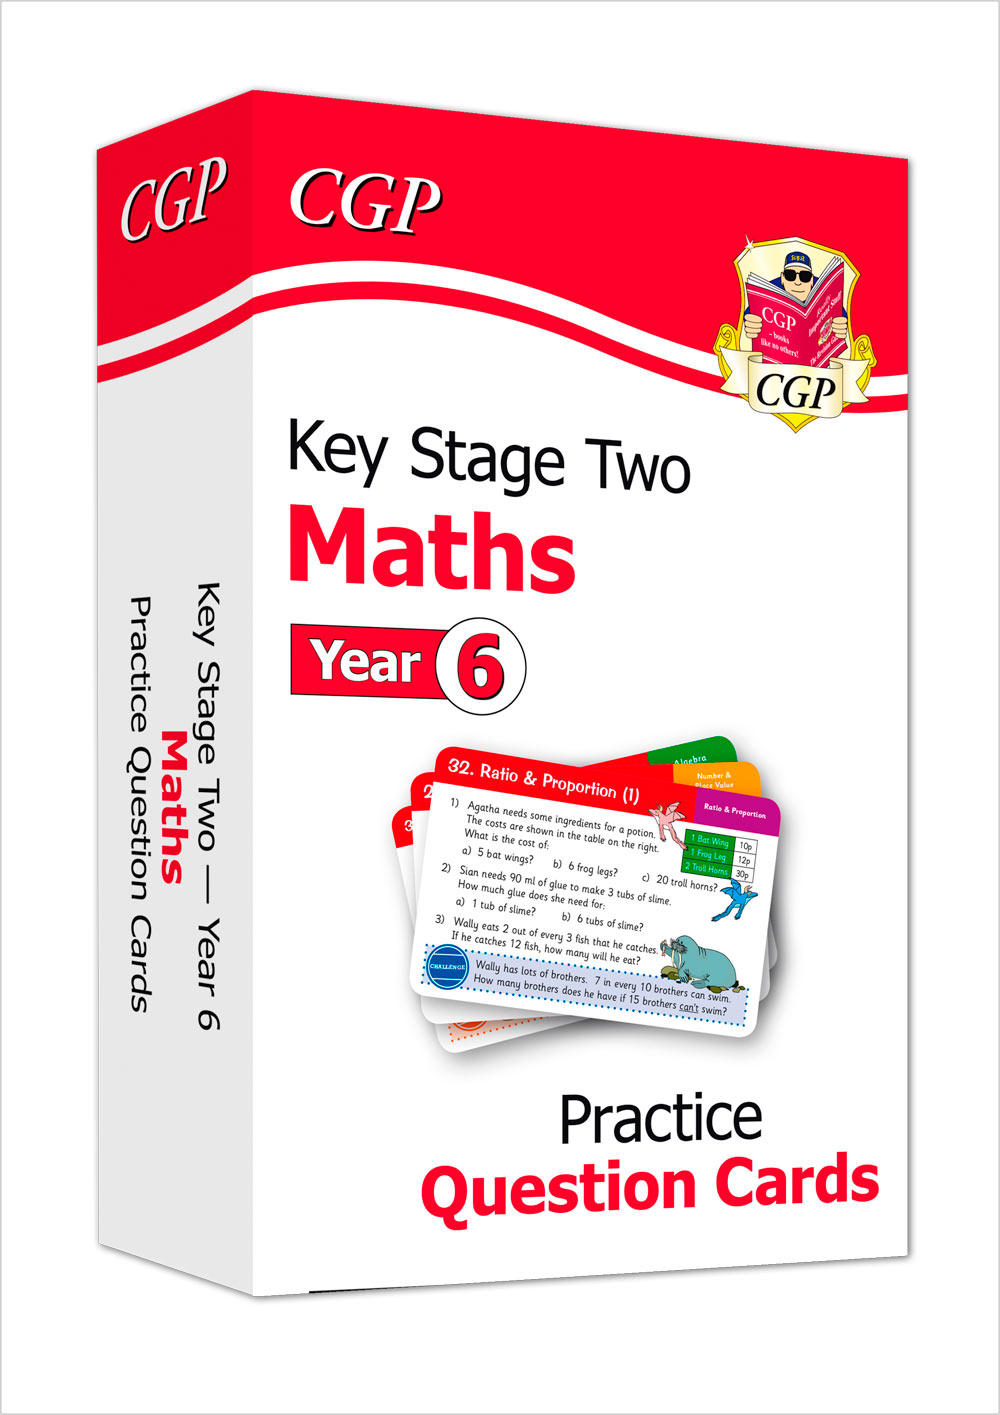 M6F21 - New KS2 Maths Practice Question Cards - Year 6